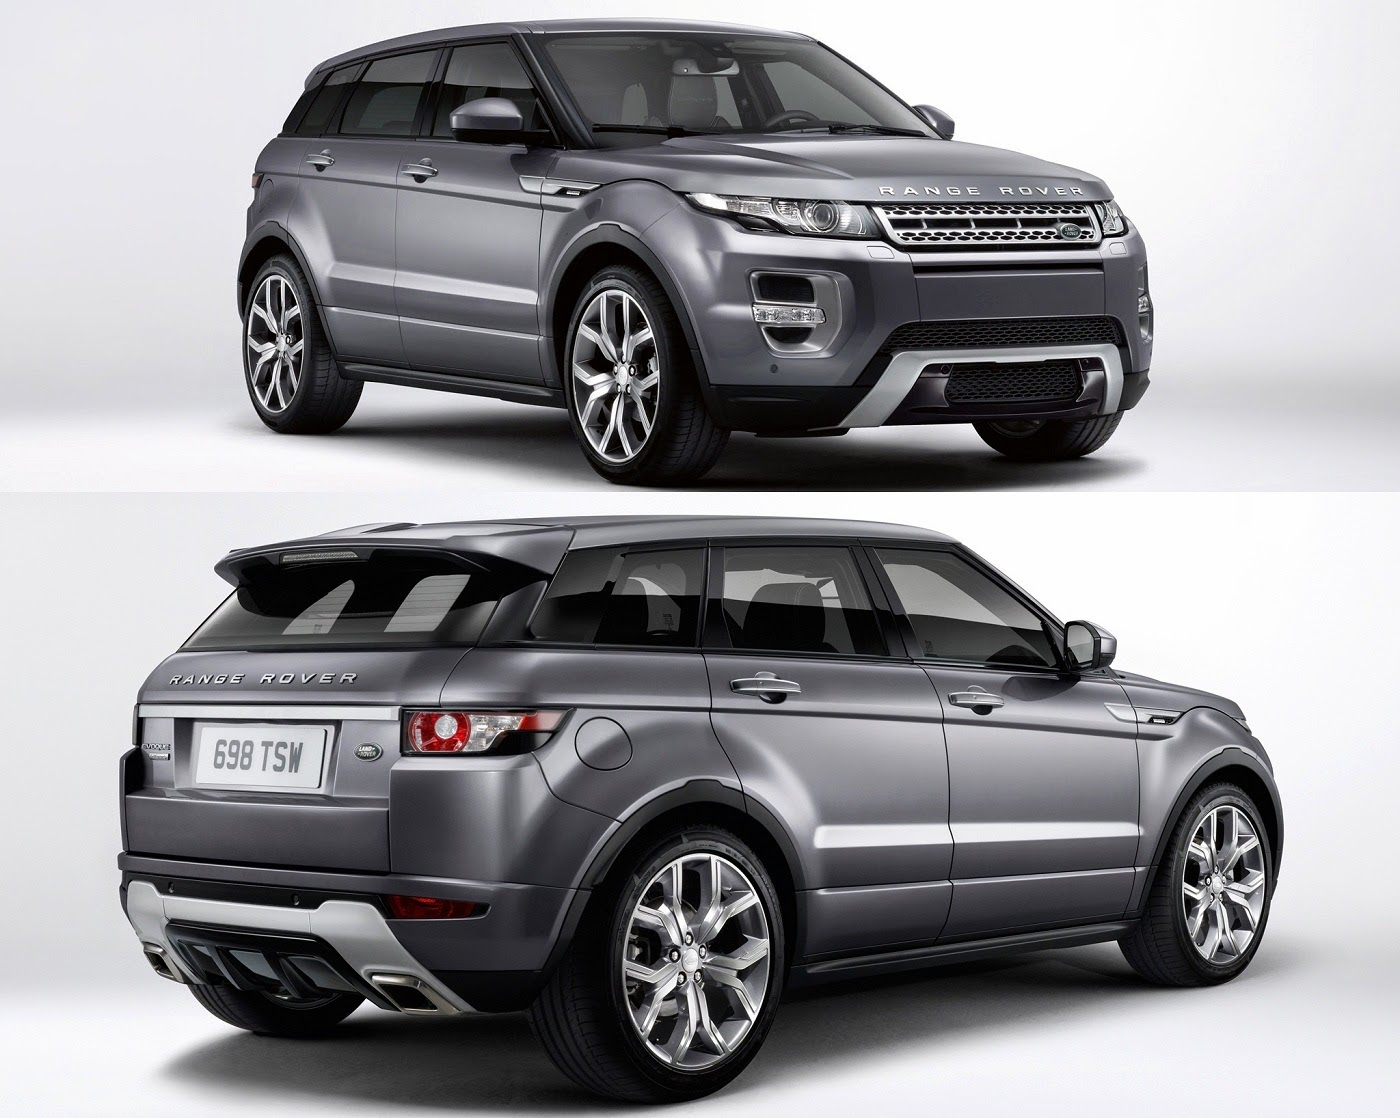 2015 range rover evoque autobiography 2 0l turbo car reviews new car pictures for 2018 2019. Black Bedroom Furniture Sets. Home Design Ideas